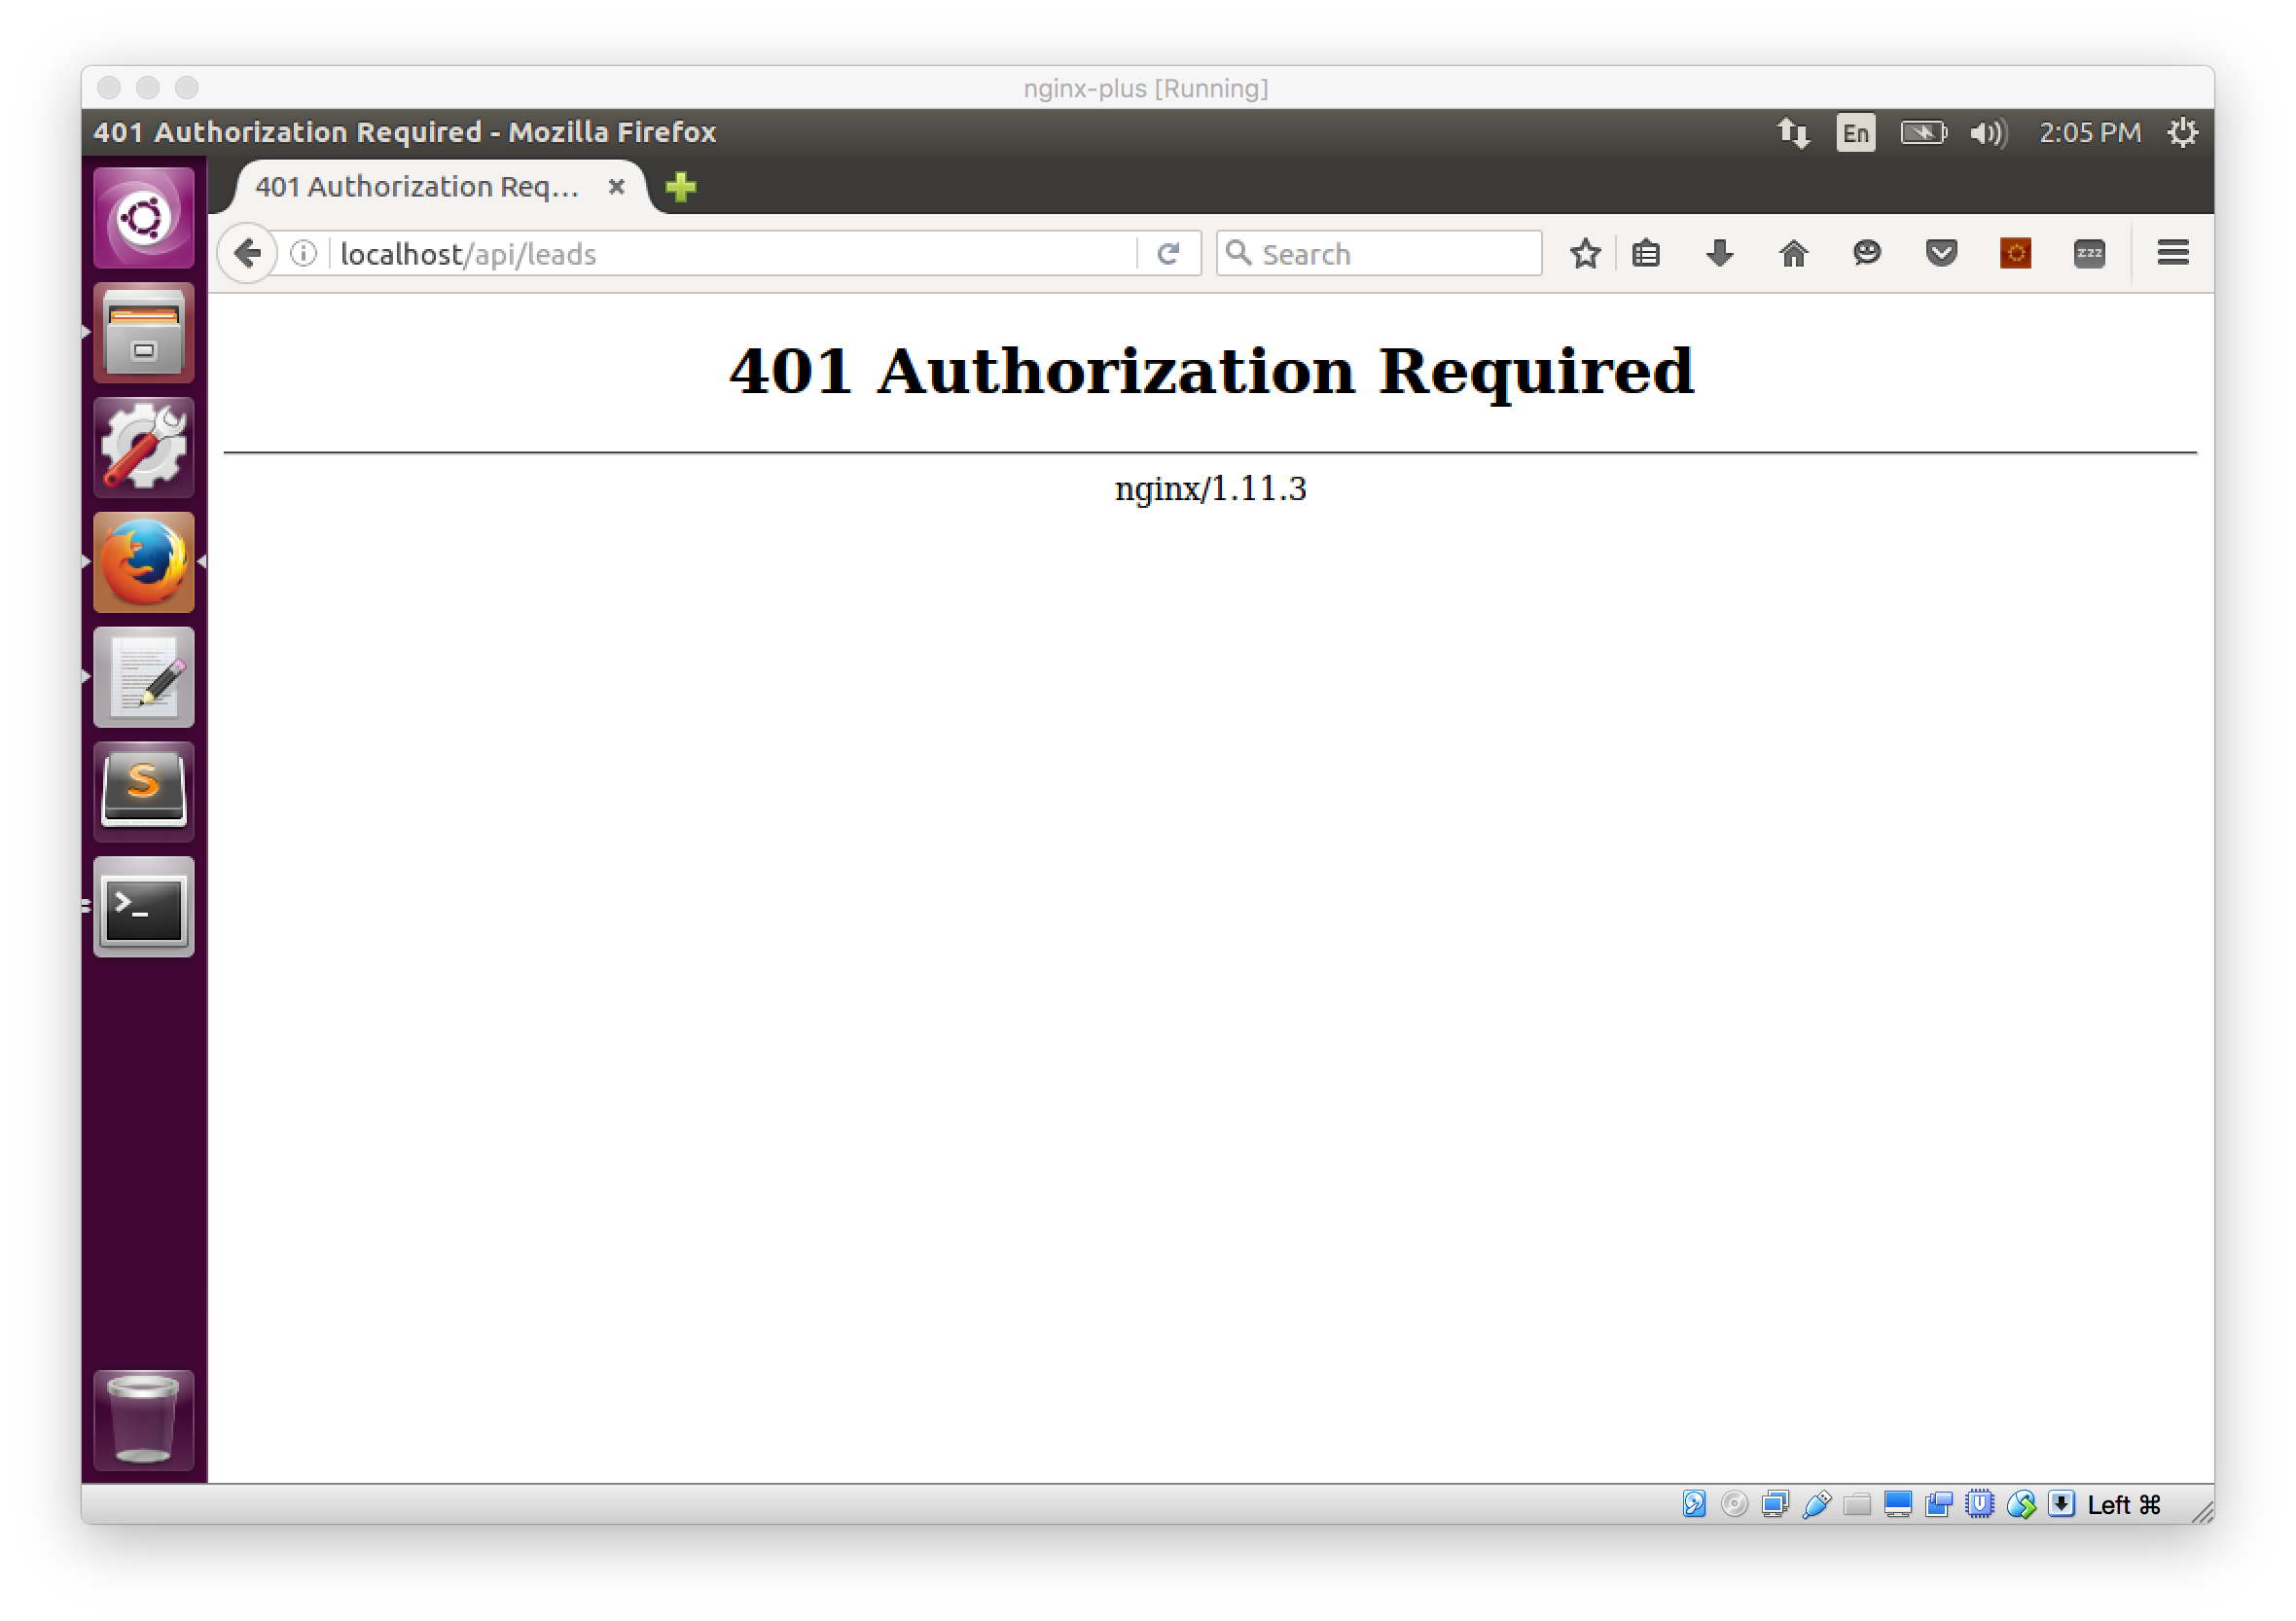 Unauthorized NGINX Plus request